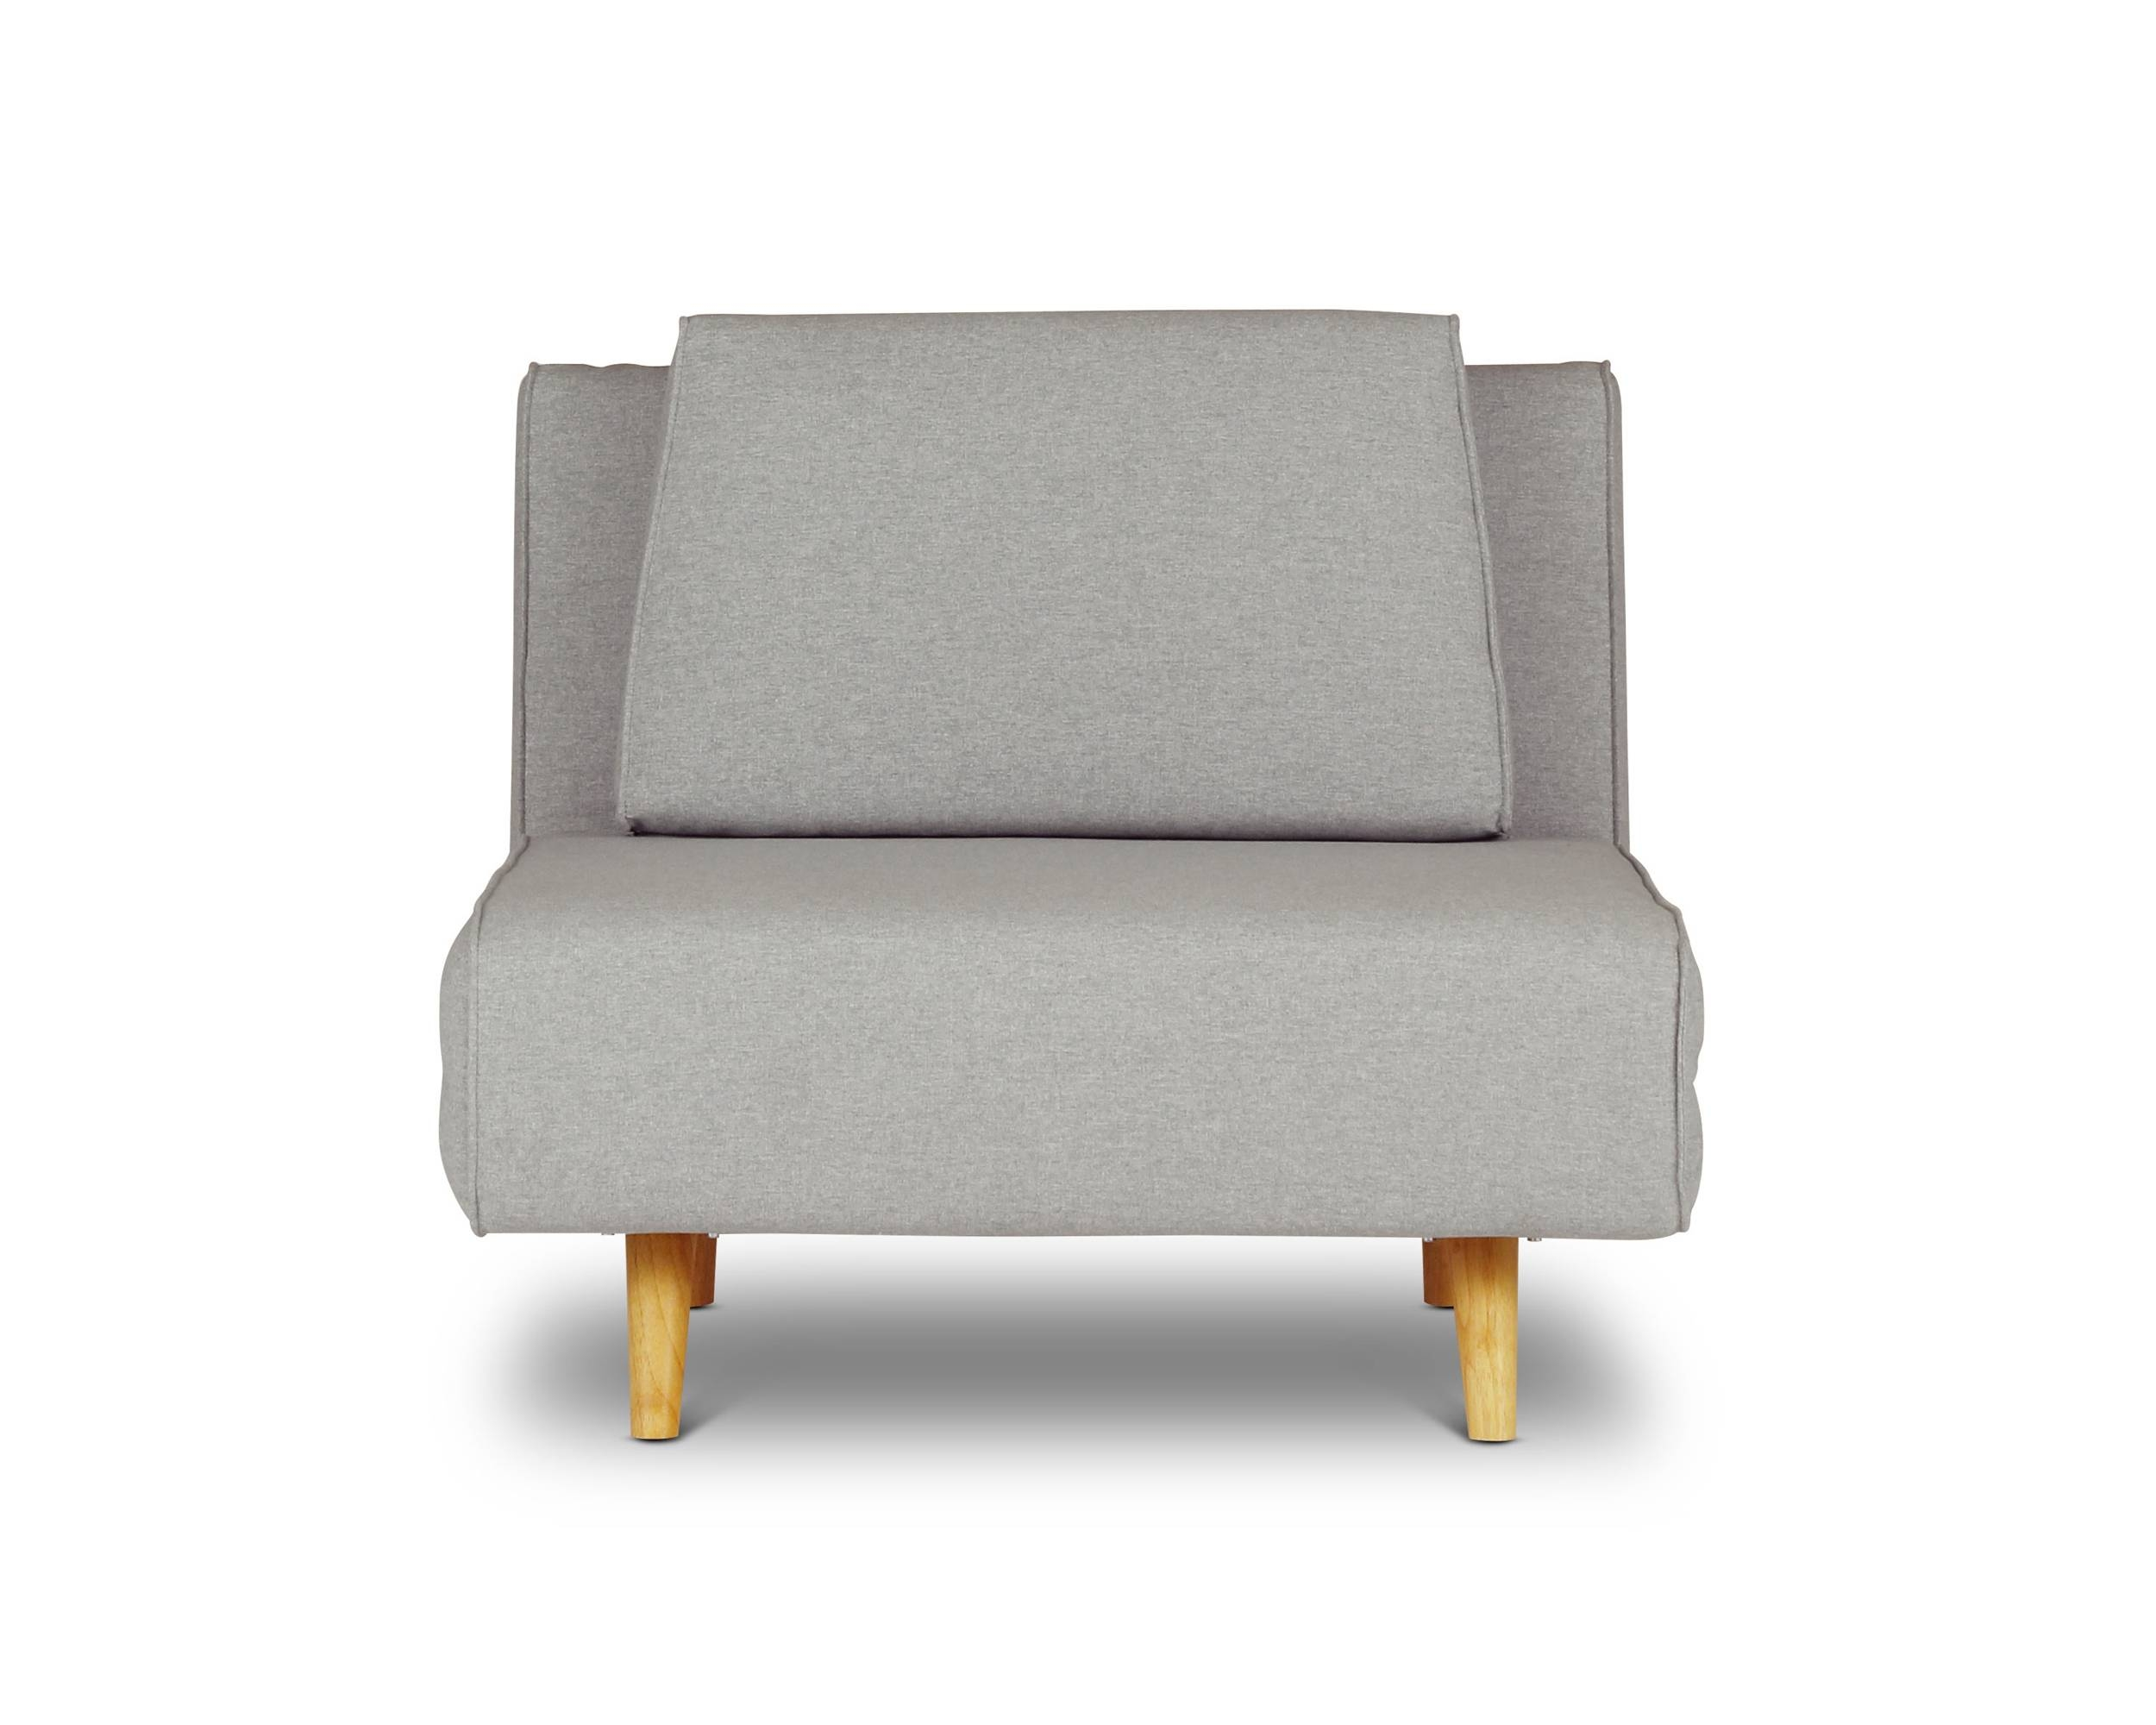 Sofas Center : 43 Remarkable Sofa Bed Chair Photos Inspirations with Single Sofa Chairs (Image 21 of 30)